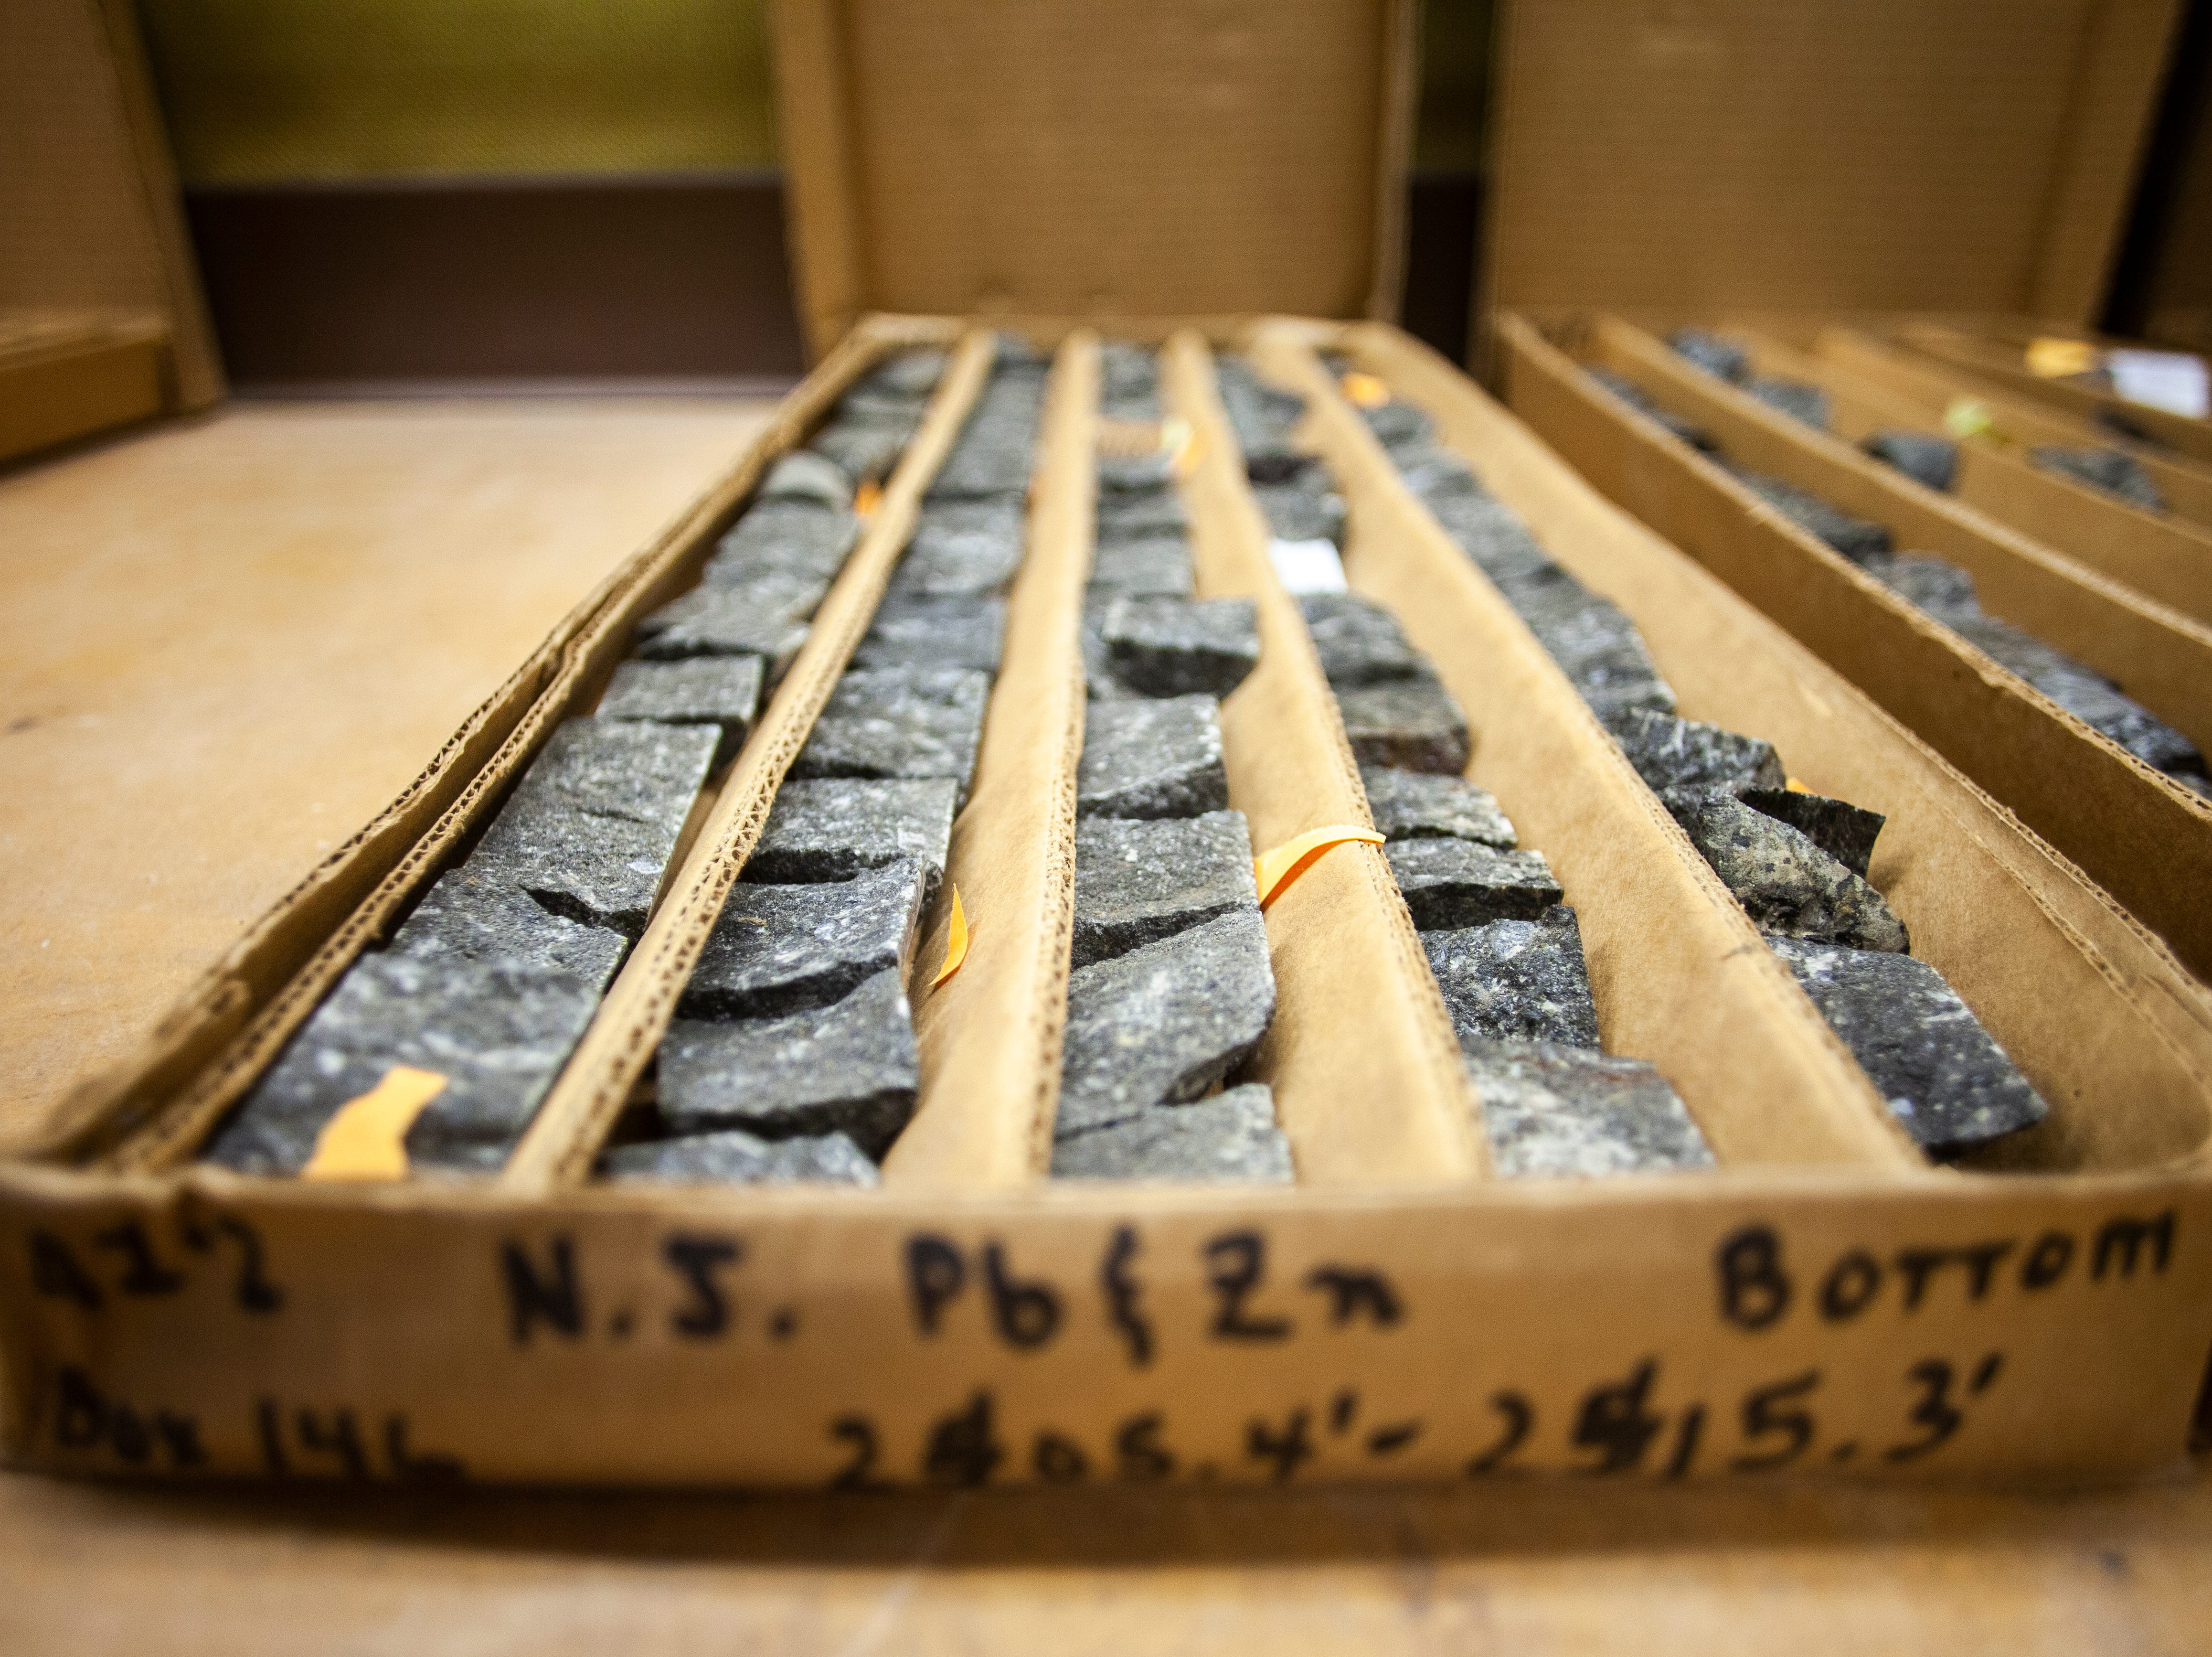 Halves of core samples taken in northeast Iowa at 2000 feet are seen on Monday, Jan. 7, 2019, at his office in the at UI Oakdale Research Campus in Coralville, Iowa.